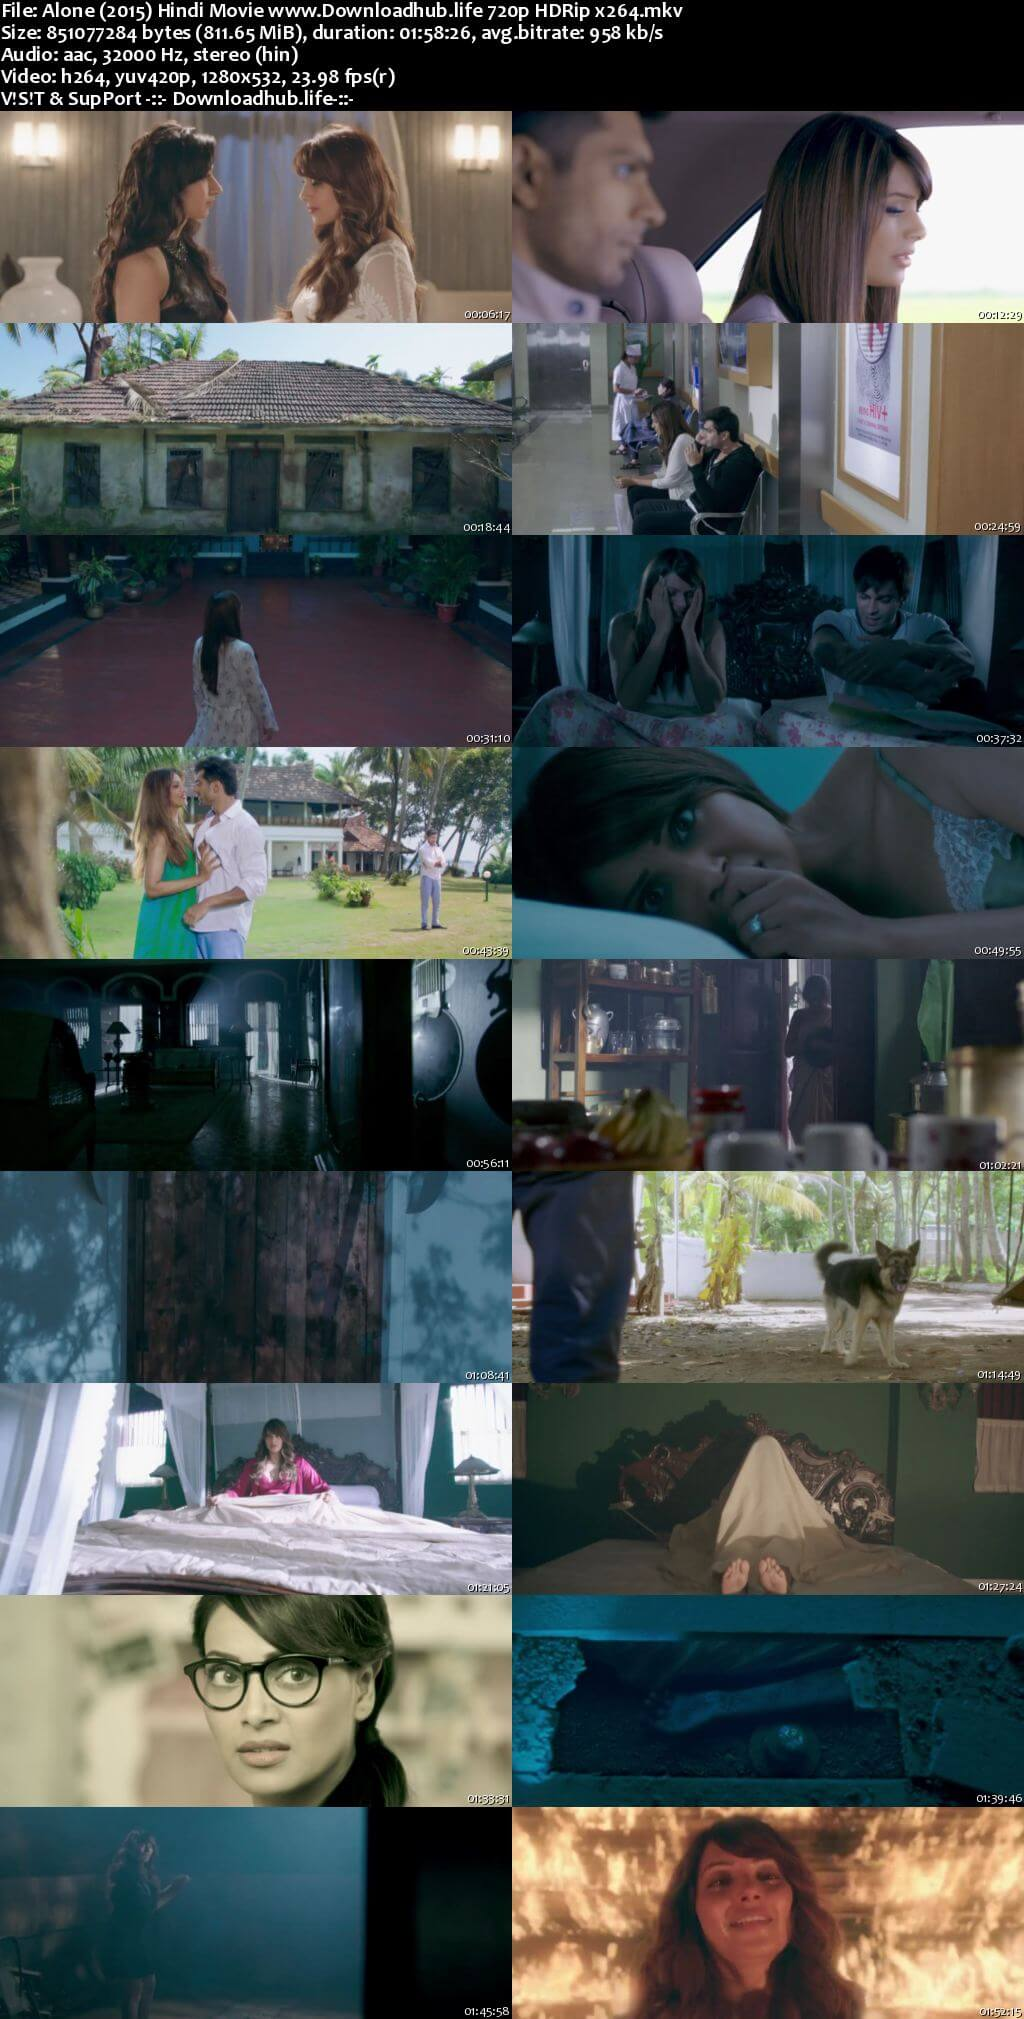 Alone 2015 Hindi 720p HDRip x264